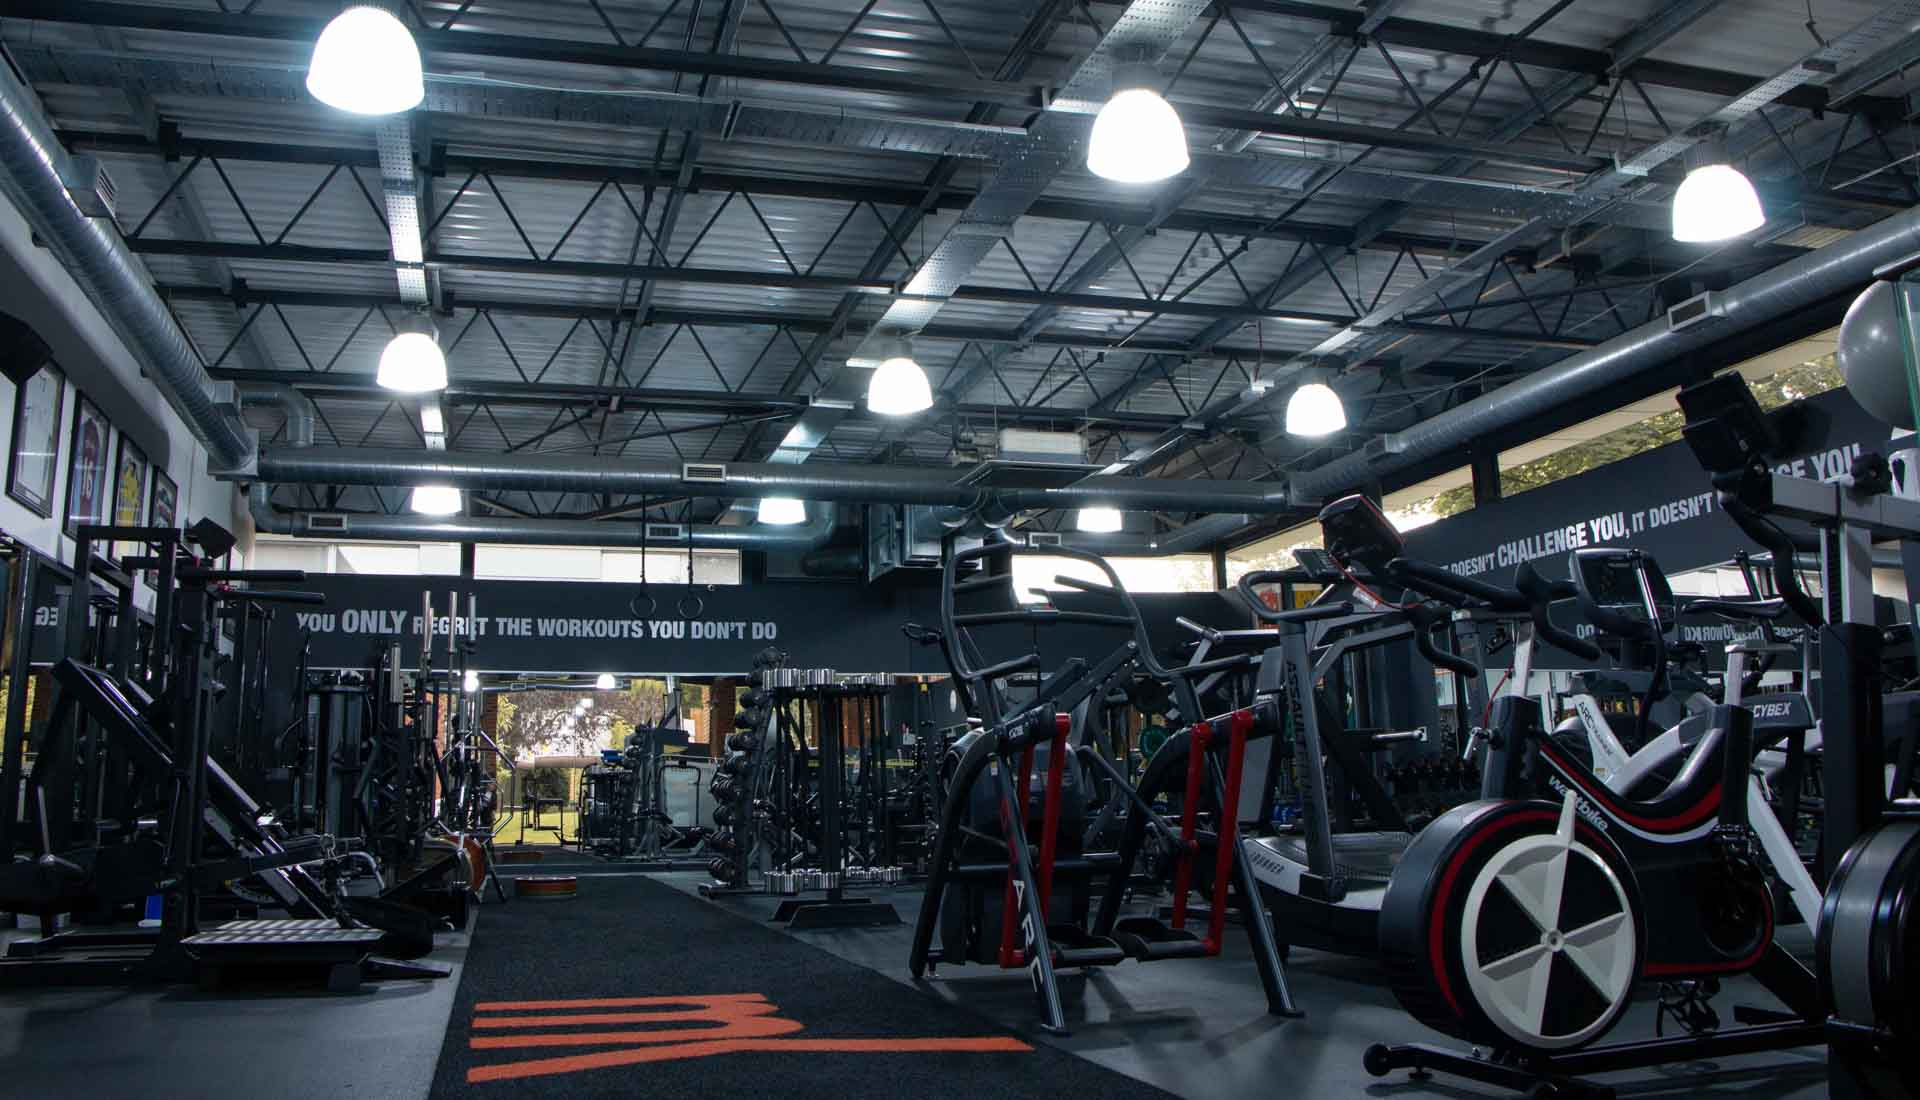 MK Health Hub gym in Solihull Birmingham, professional gym photography, fitness and gym photographer Birmingham and West Midlands